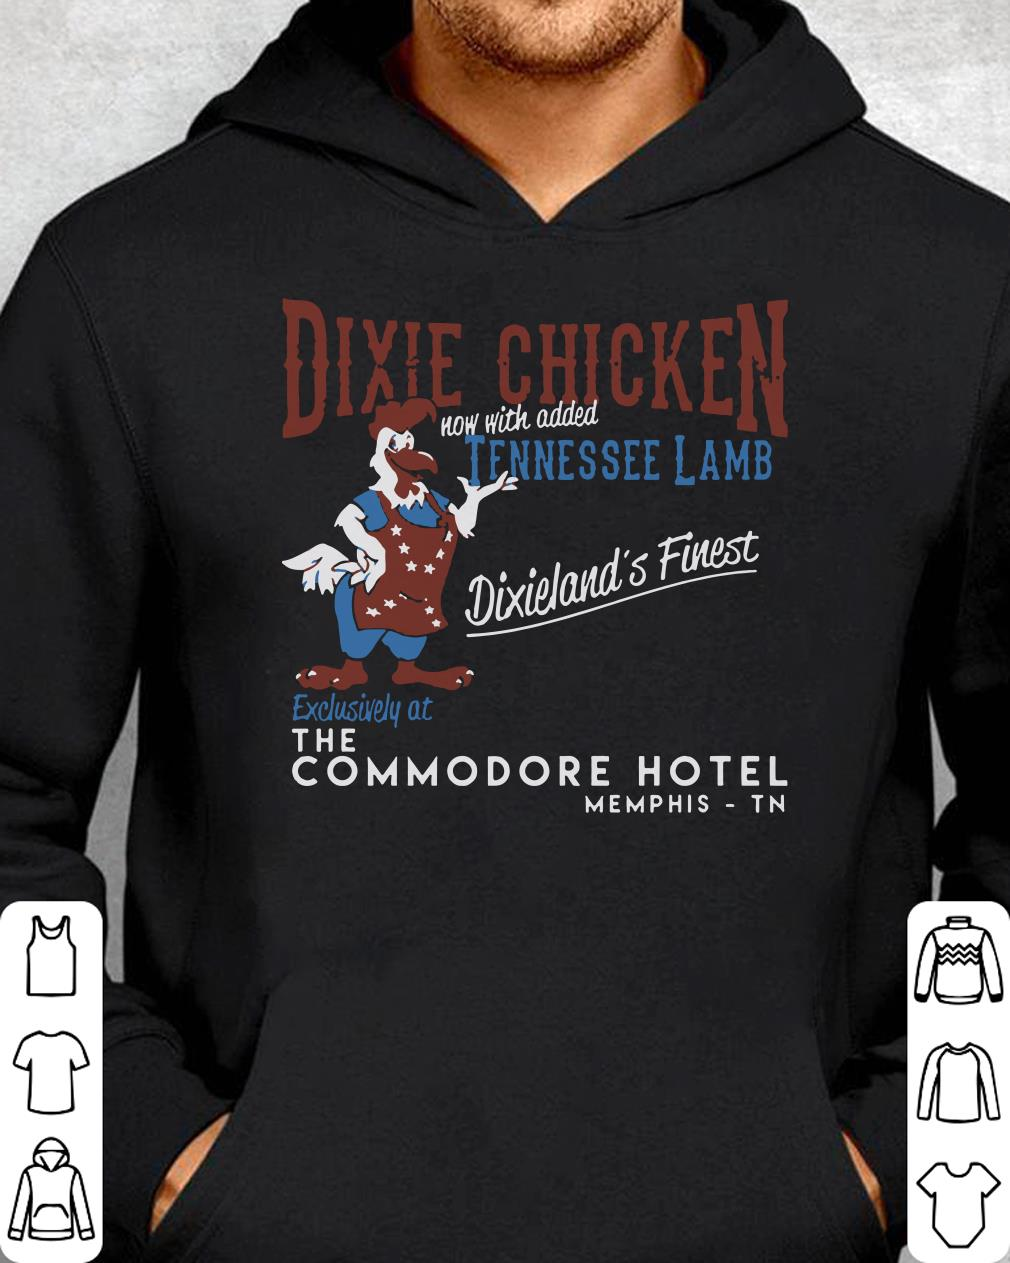 Christmas In Dixie Shirt.Premium Dixie Chicken Now With Added Tennessee Lamb Dixieland S Finest Exclusively The Commodore Hotel Shirt